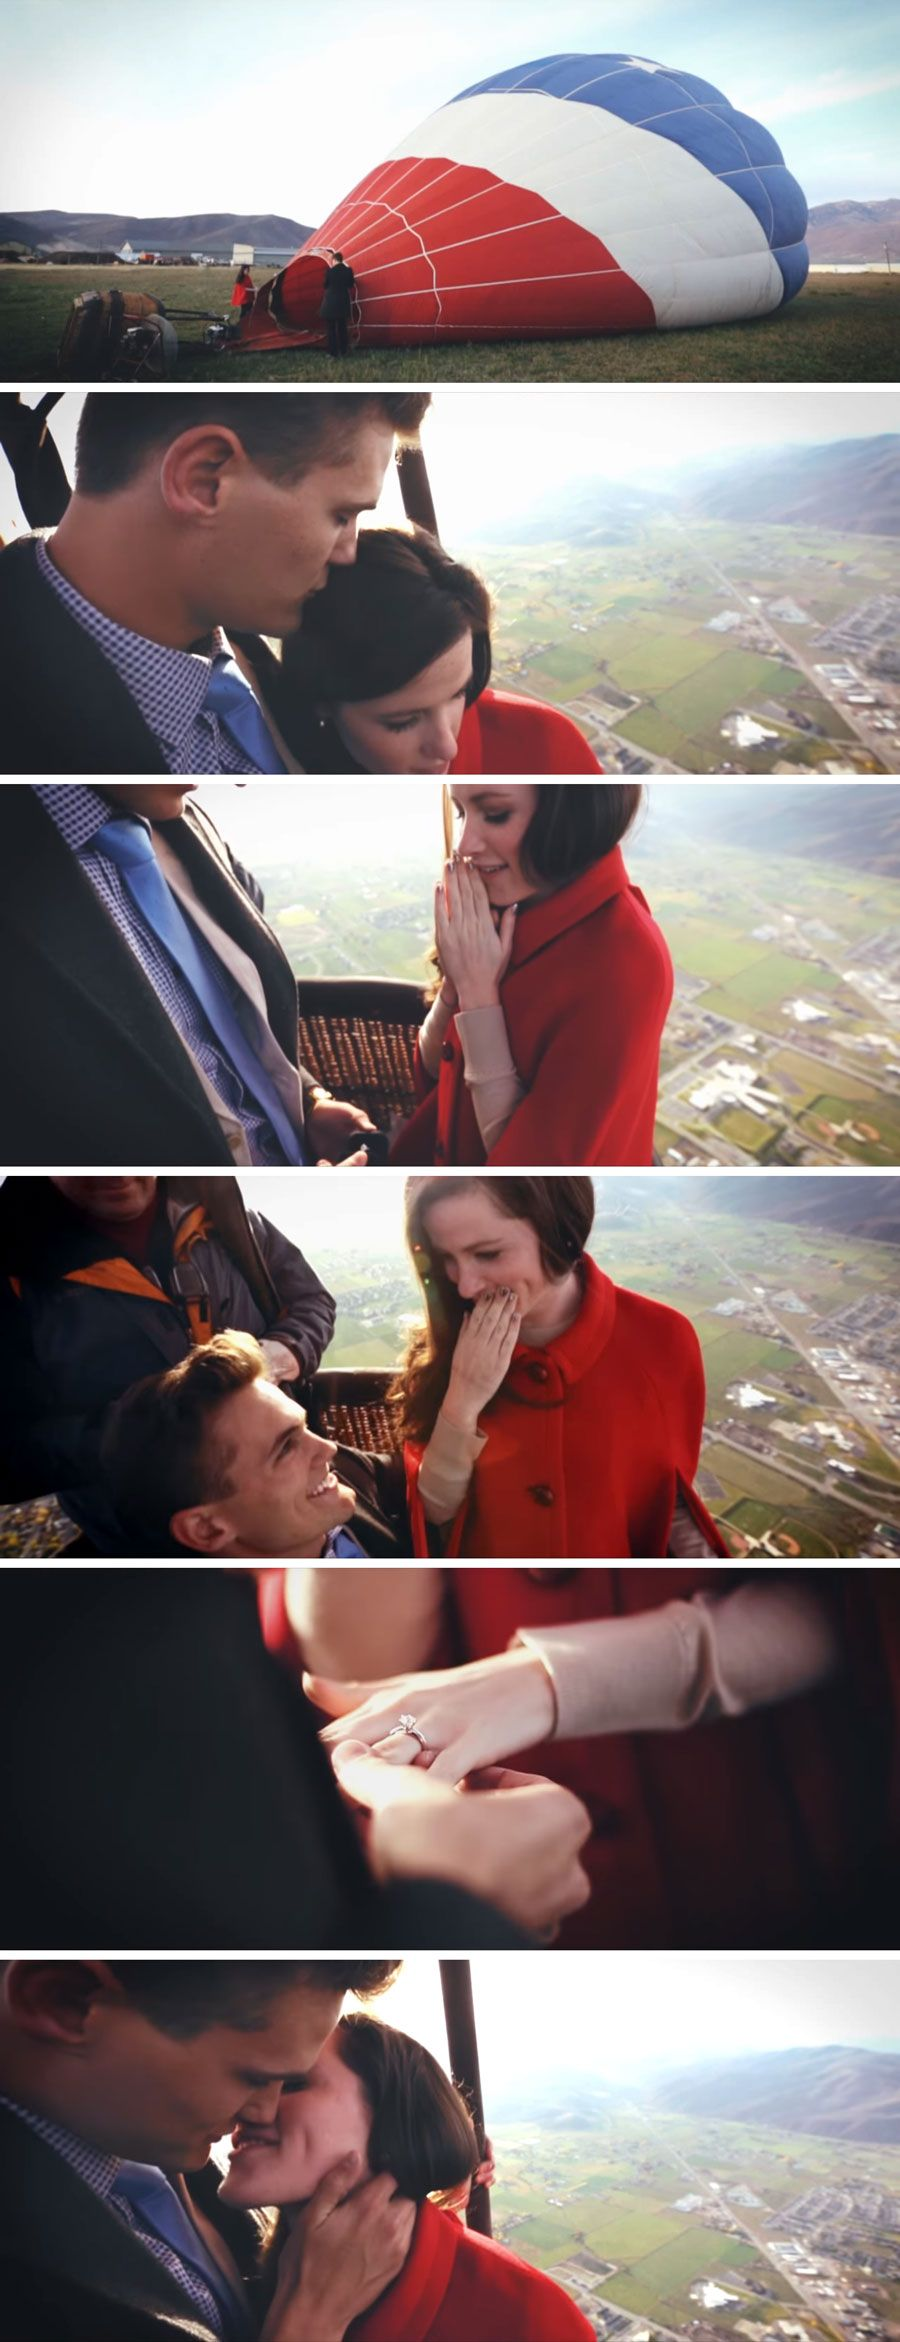 Hot air balloon proposal video marriage proposals